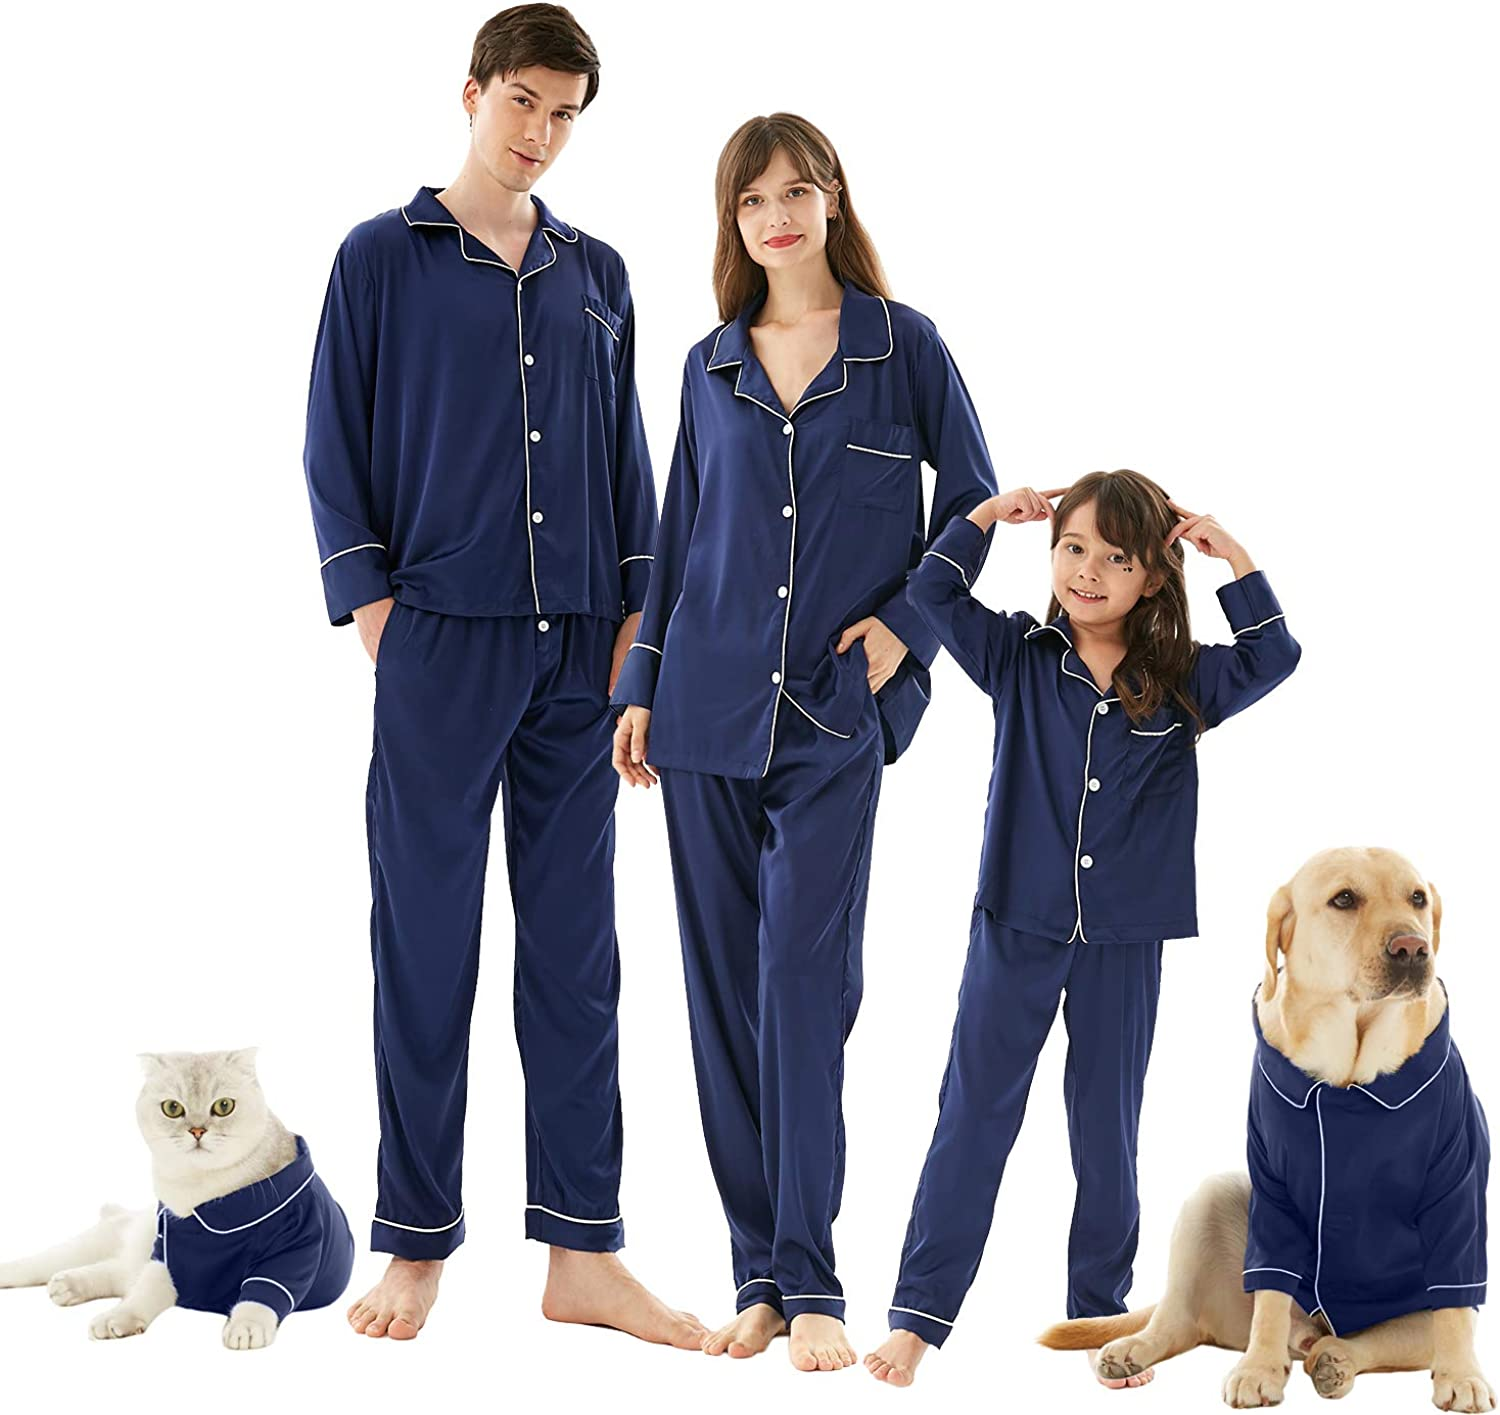 Mens Christmas Pajamas, Silk Soft Satin Comfort Long Sleeves 2-Pieces Pajamas Set Sleepwear Pjs for Indoor Home for Family Matching Size XL Navy